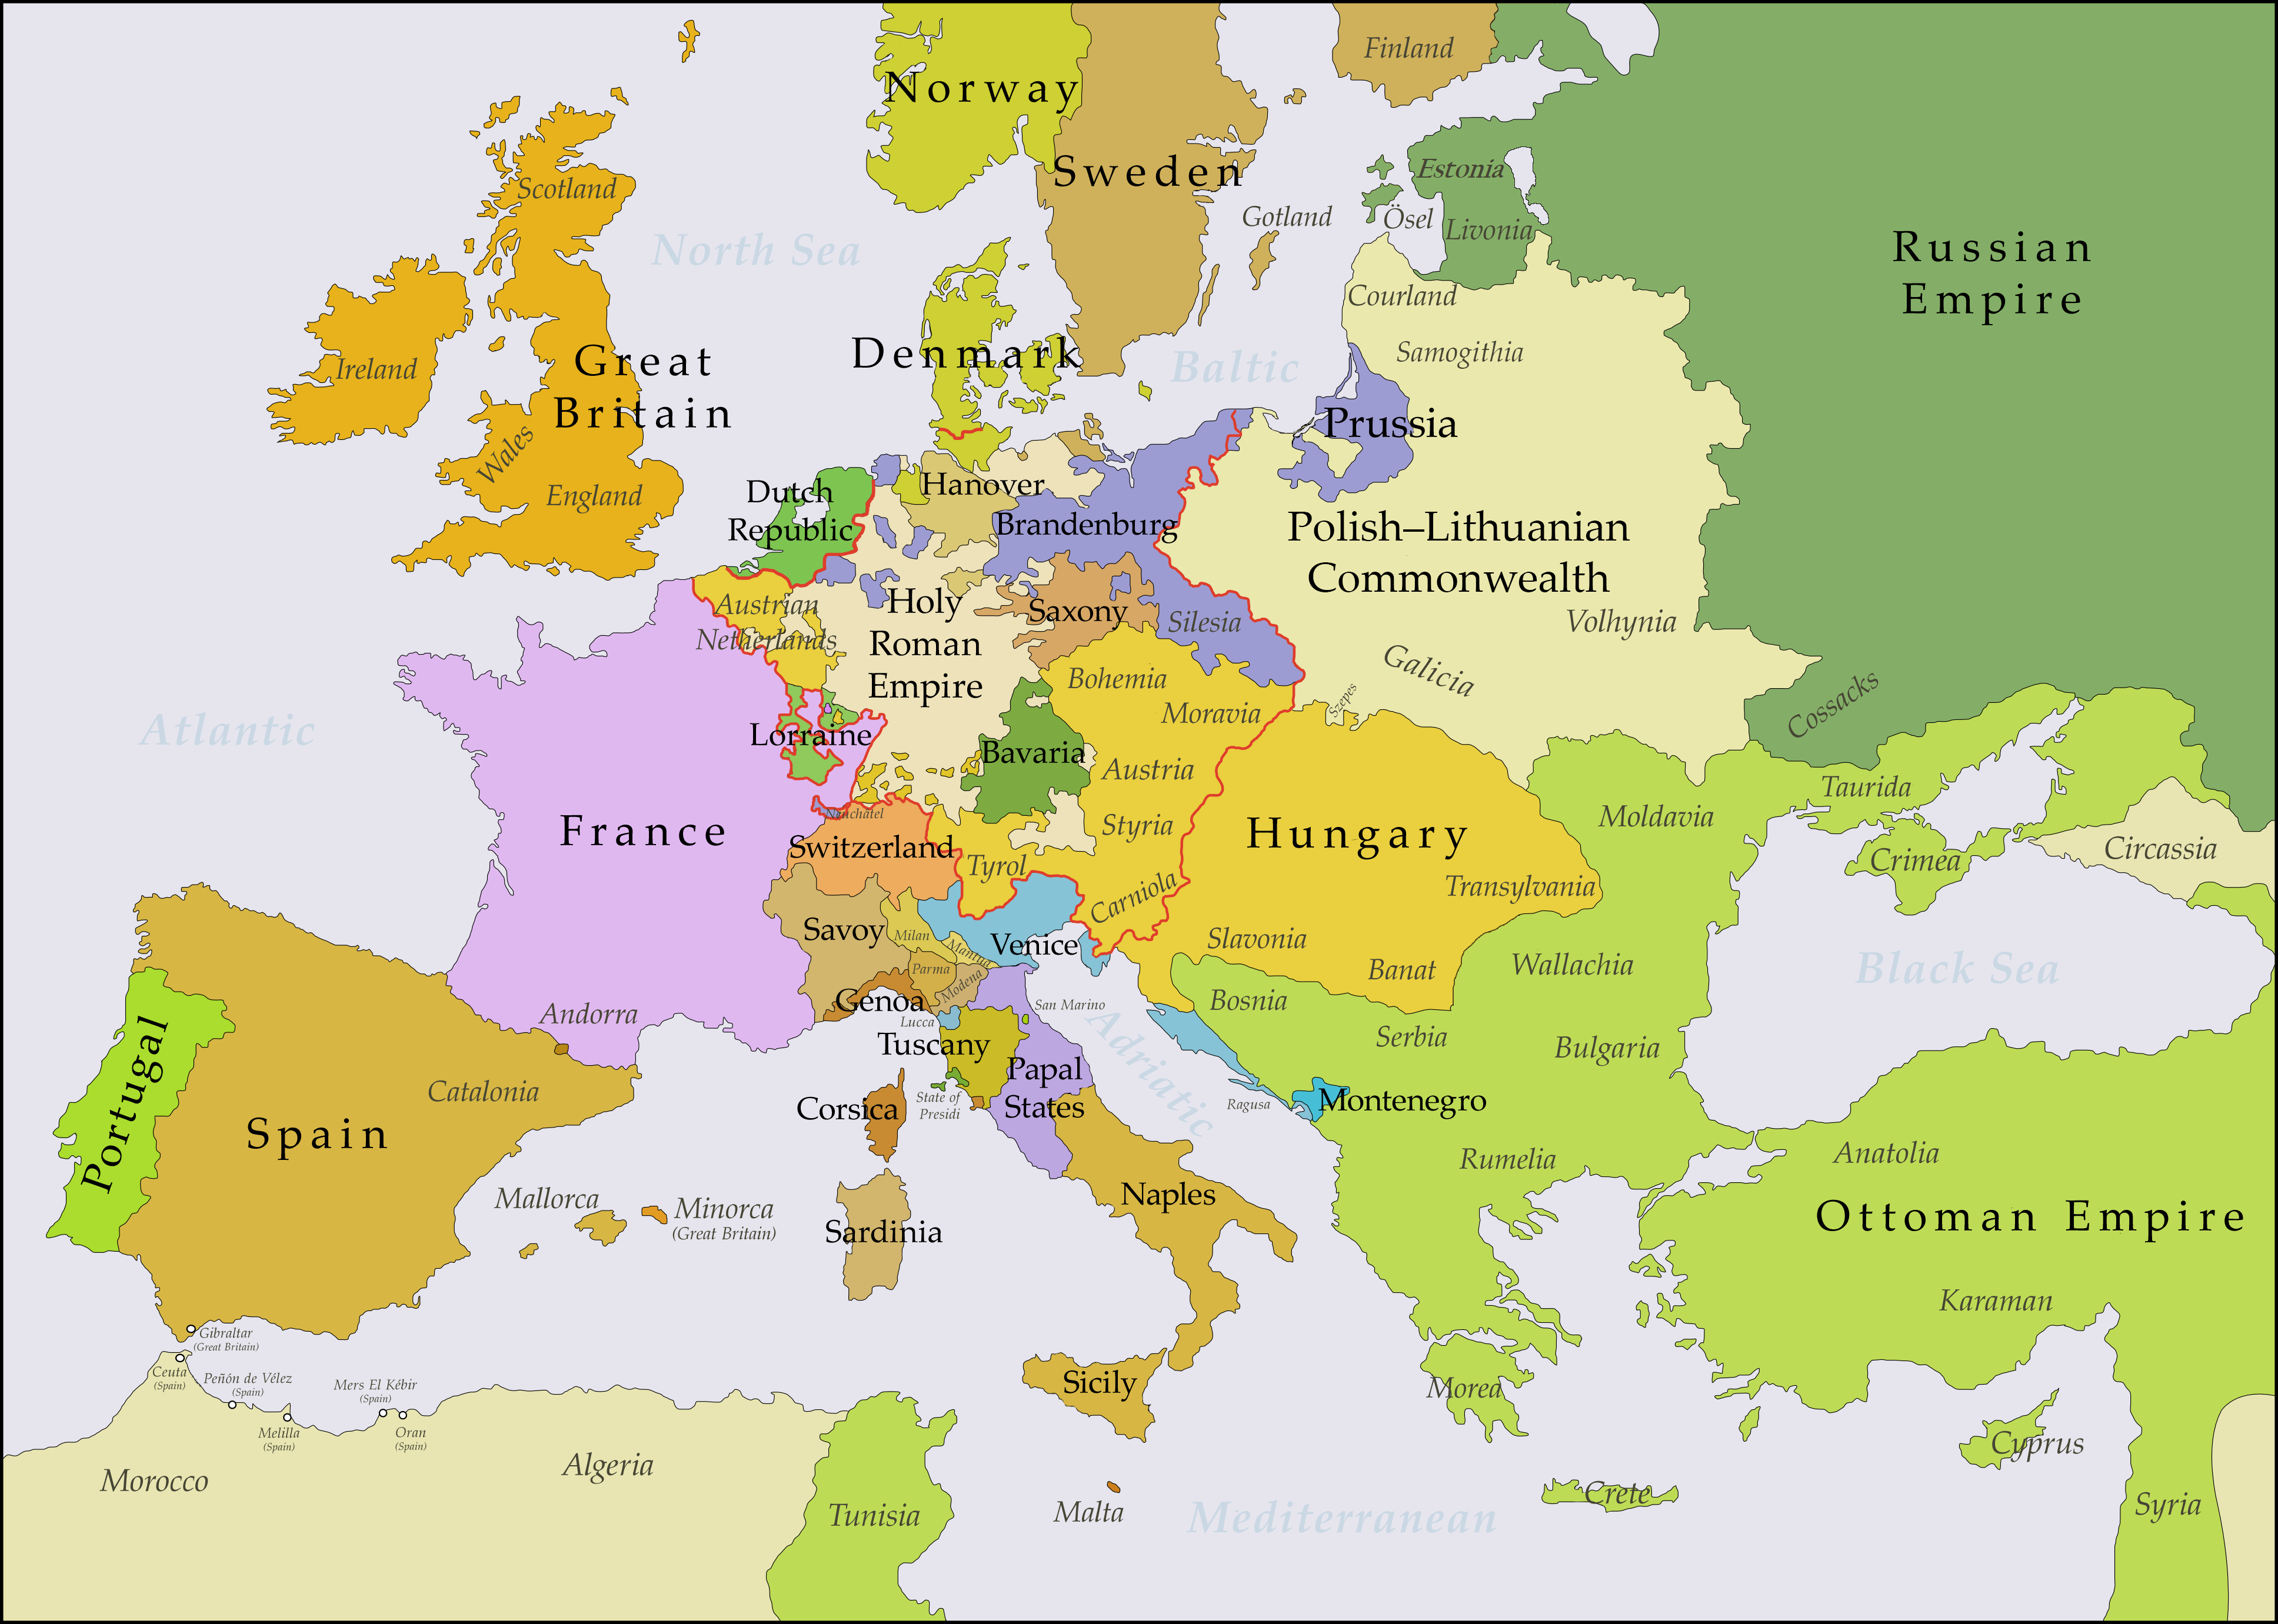 Europe 1750 | Maps and flags | Map, Europe, Historical maps